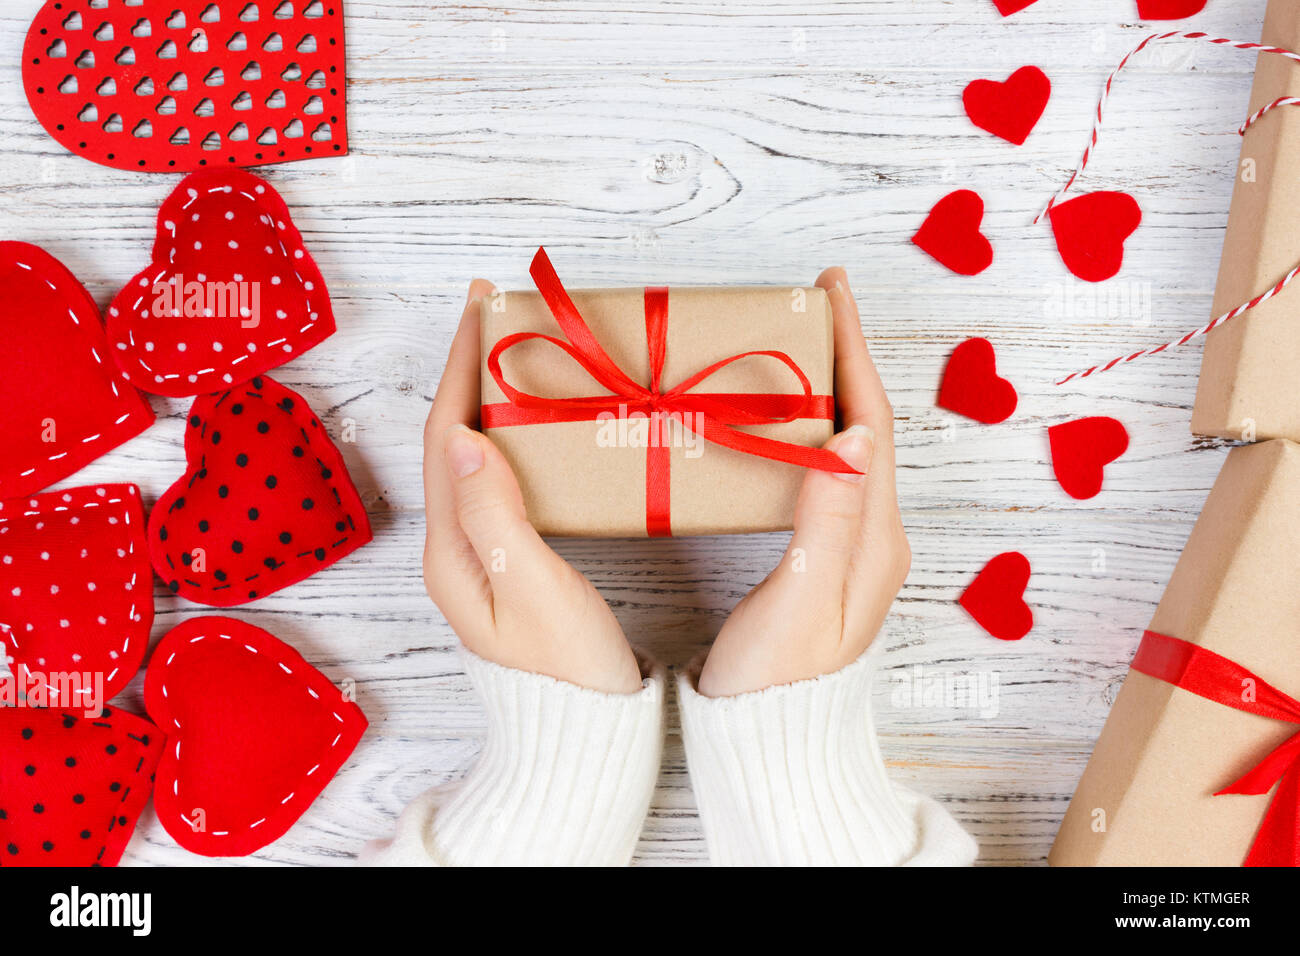 Valentines Day background. girl hand give valentine gift box with a red heart inside on a white old wooden table. Valentine day.  sc 1 st  Alamy & Valentines Day background. girl hand give valentine gift box with a ...